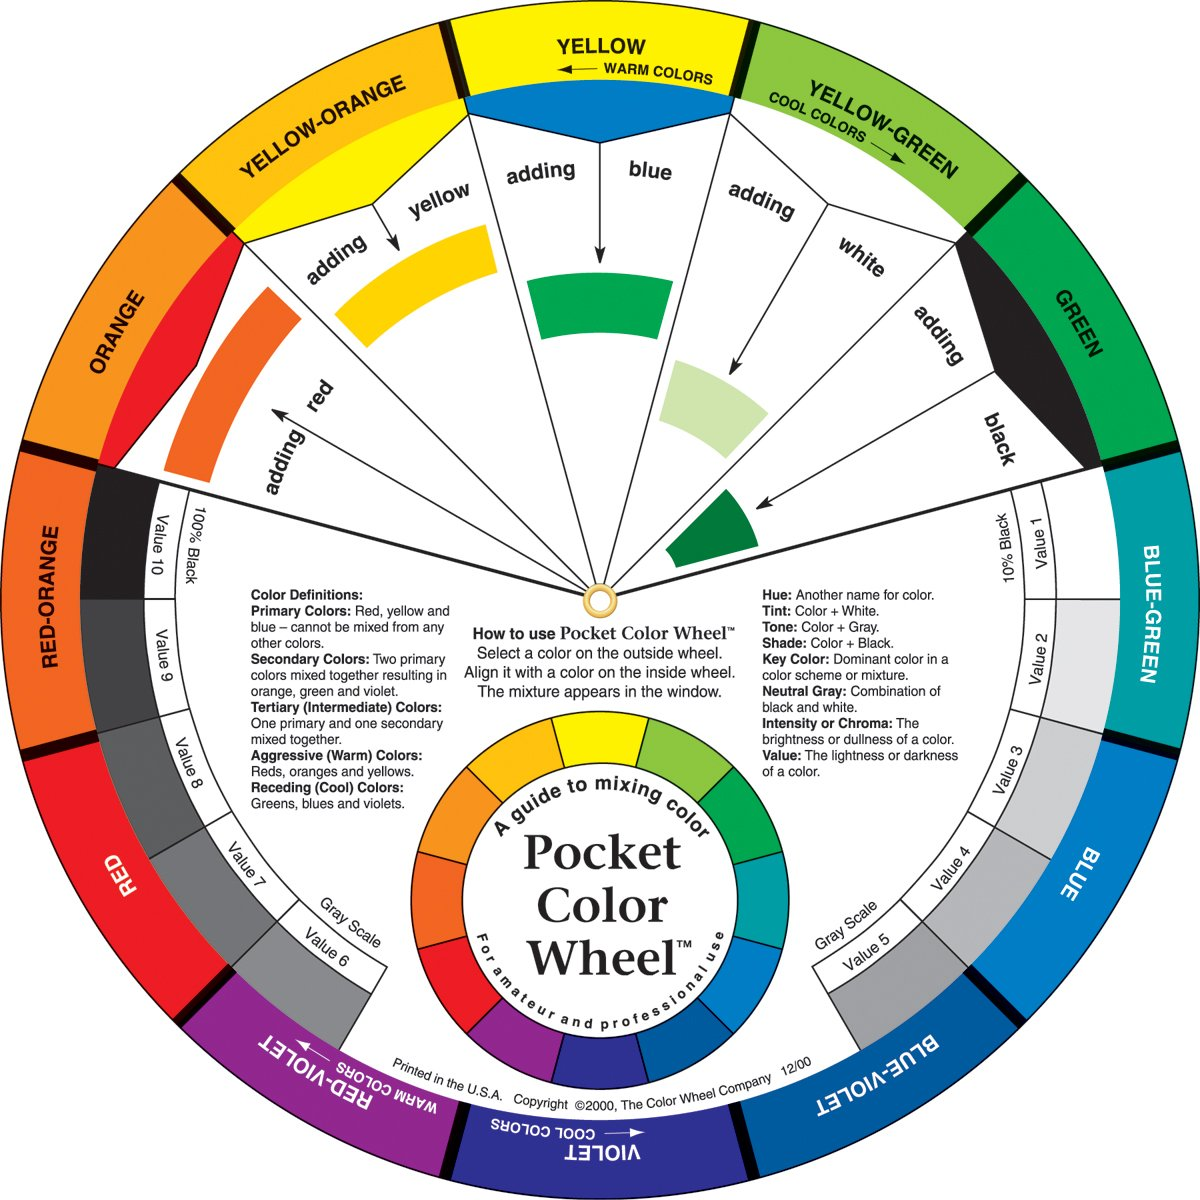 If you don't already have one, you can buy a color wheel like this from a local quilt shop or on amazon.com